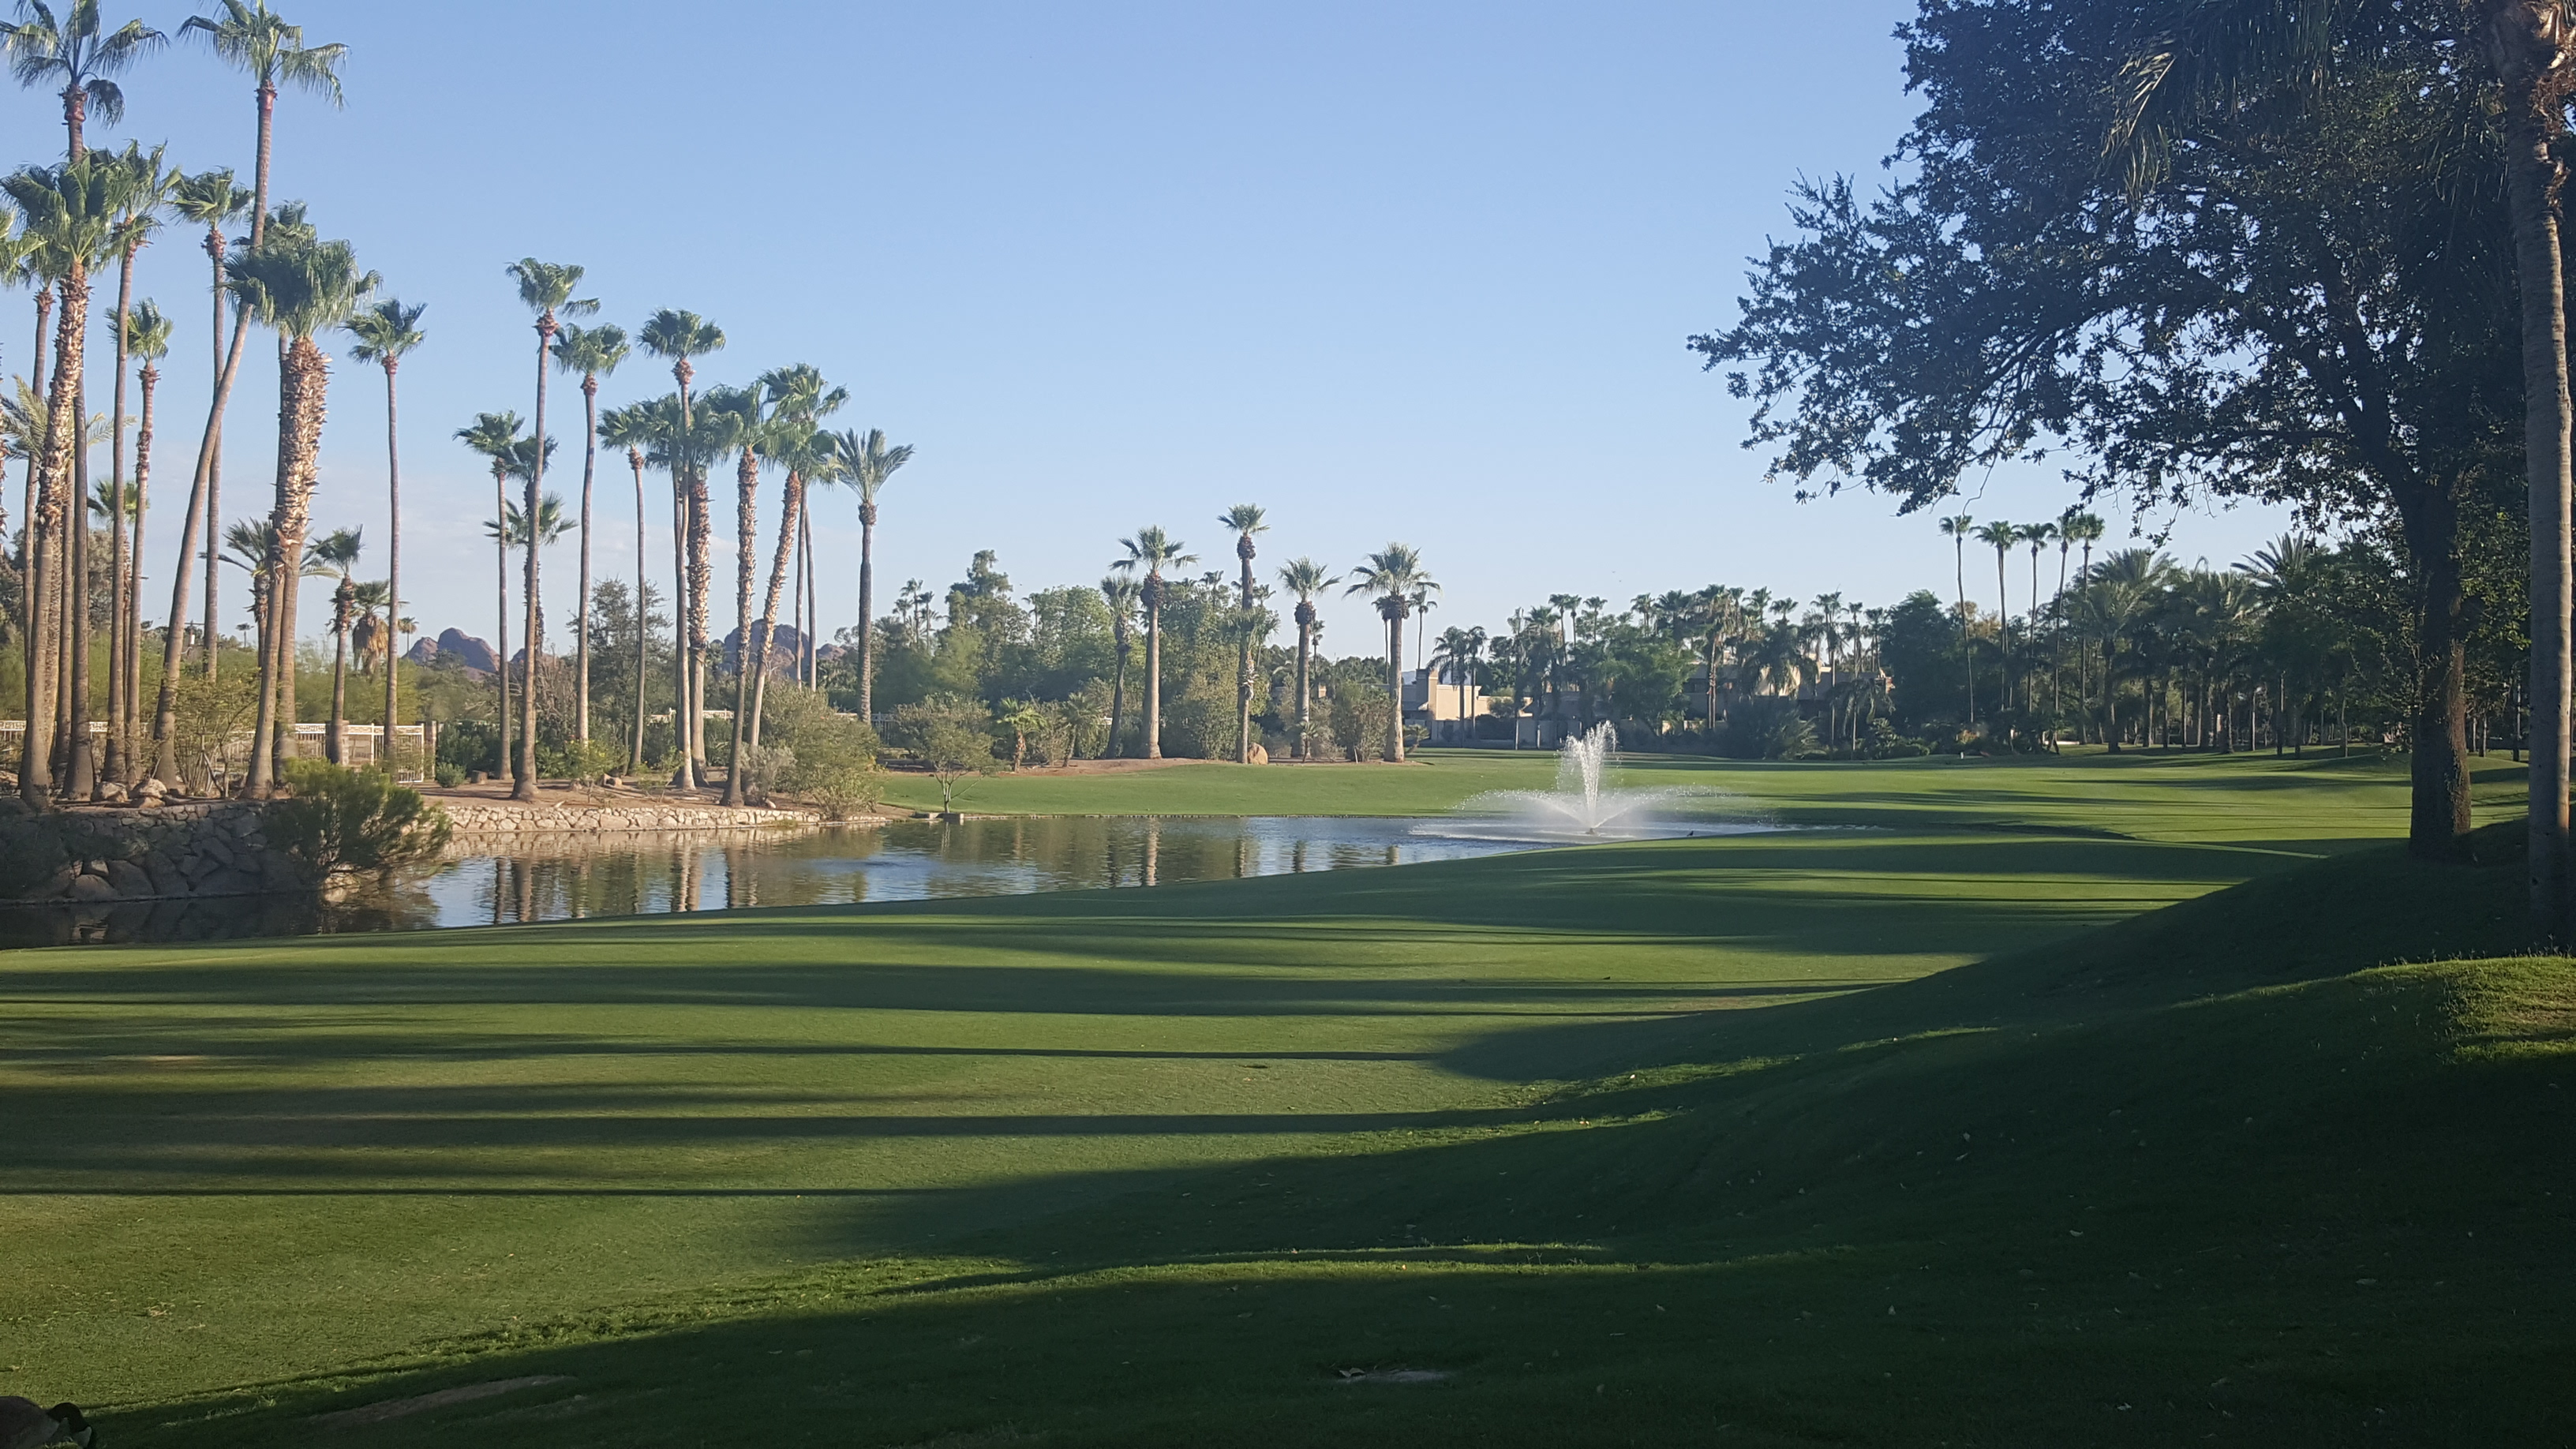 Golf resort in Scottsdale, AZ